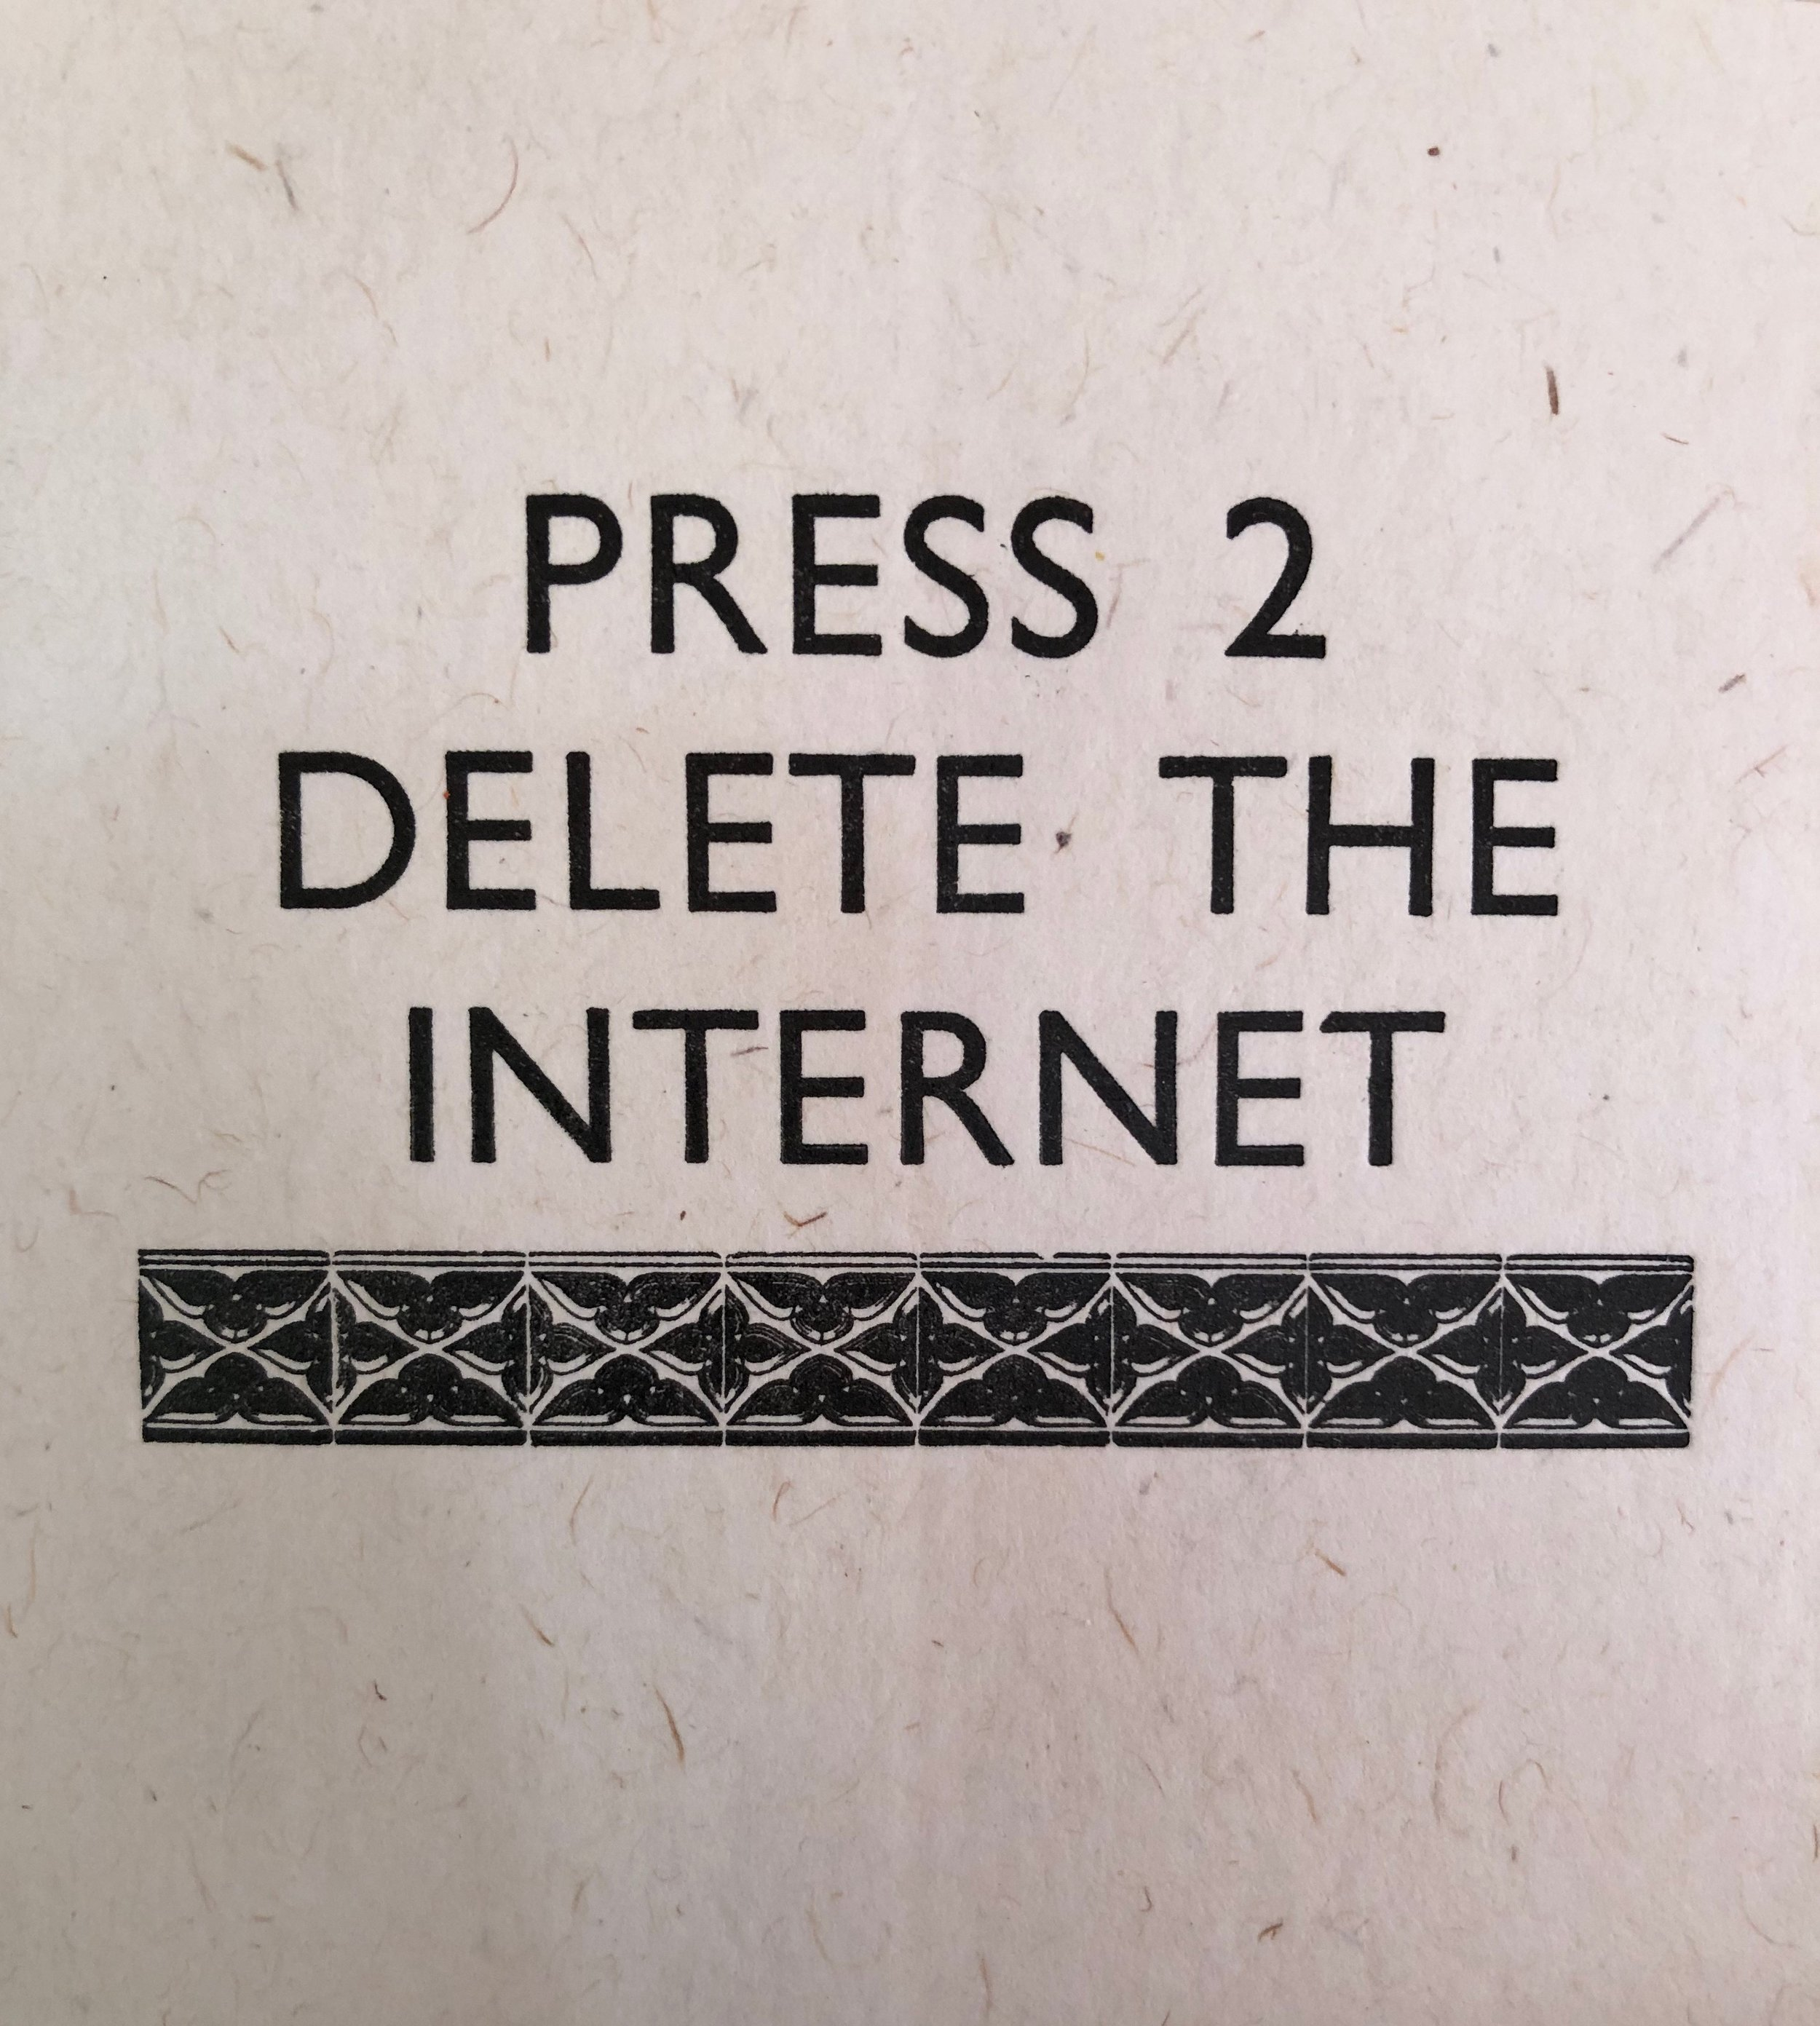 Using a Gill Sans font and a very old Victorian decoration you can PRESS TO DELETE THE INTERNET. Don't hesitate.